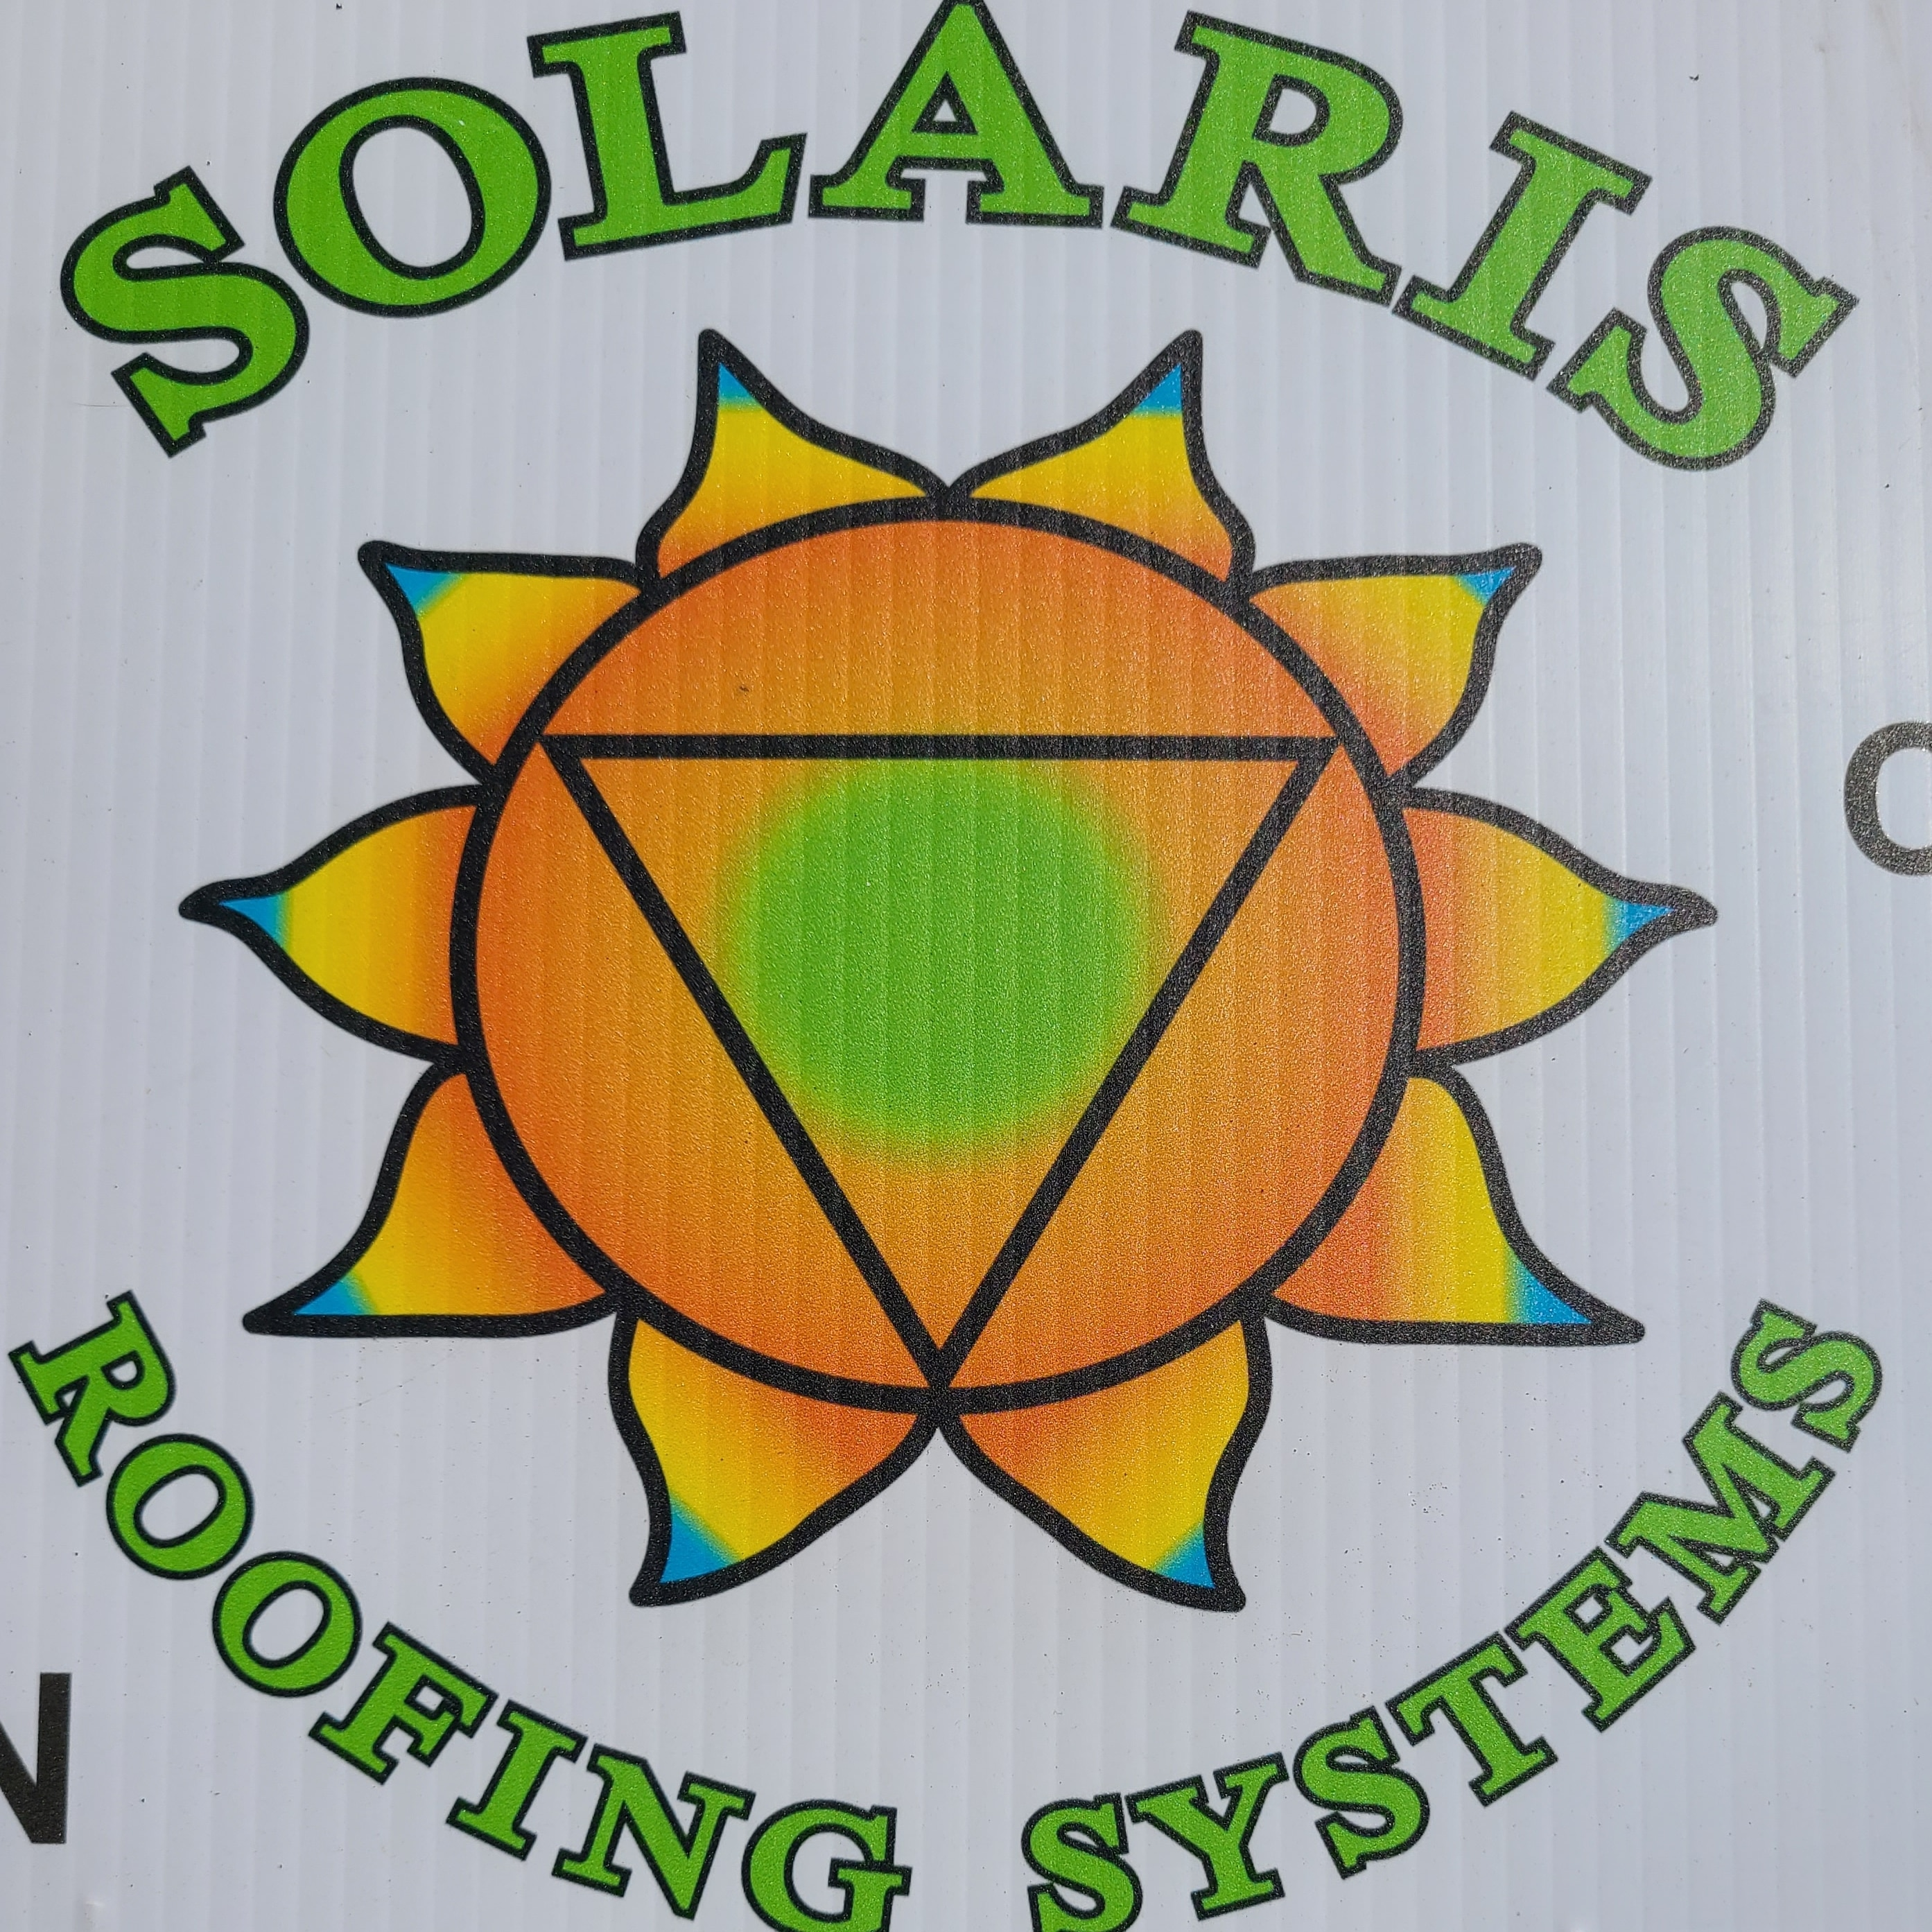 Solaris Roofing Systems logo